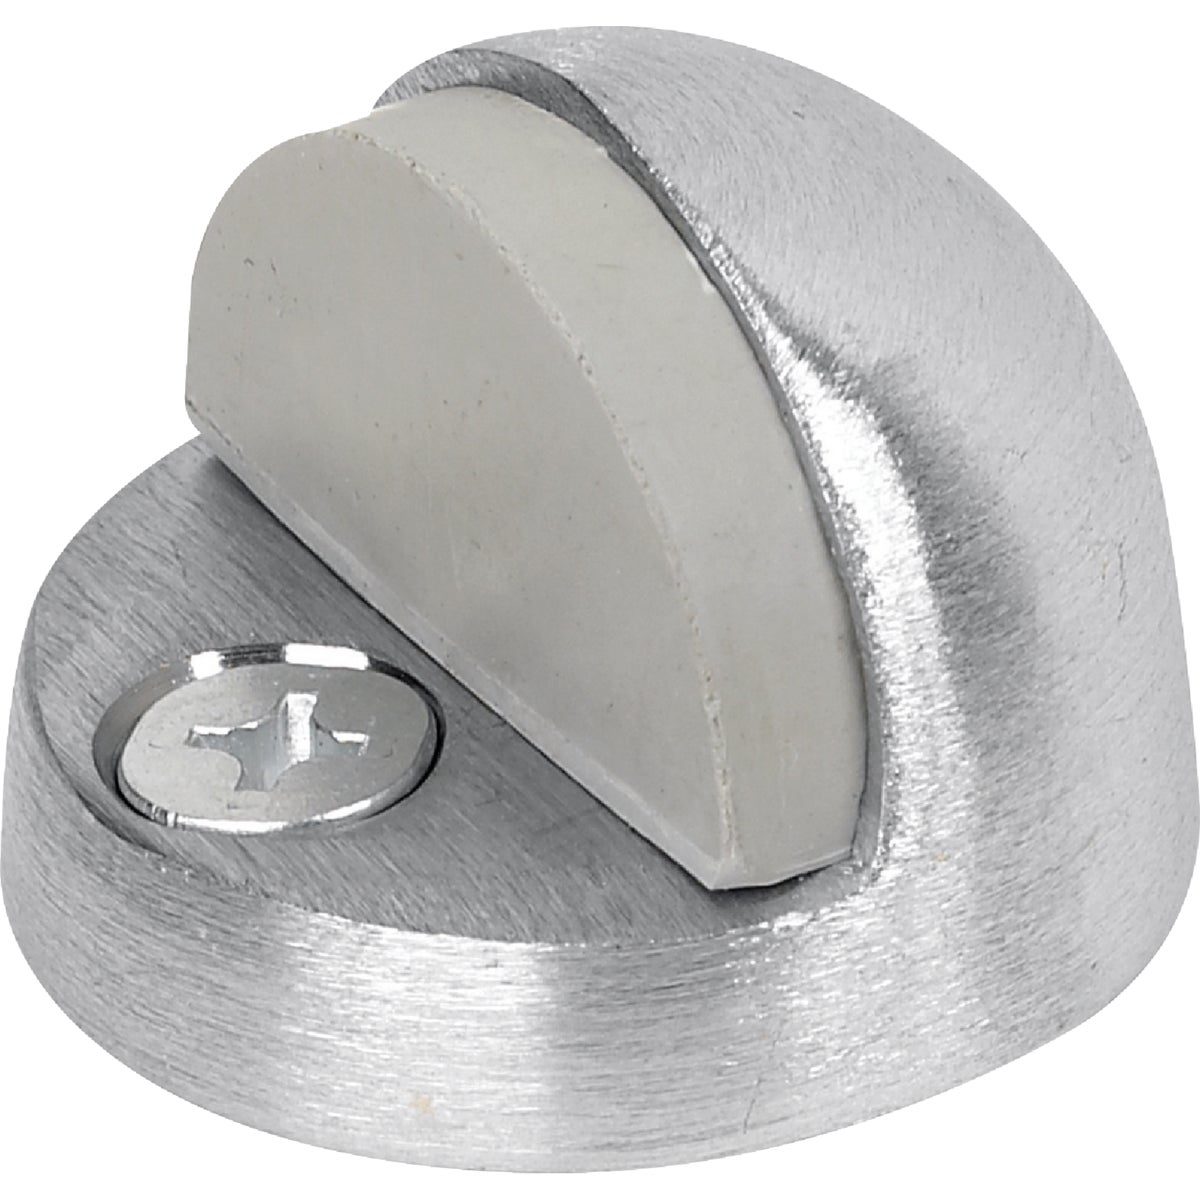 26D HIGH RISE DOME STOP - DT100032 by Tell Mfg Inc